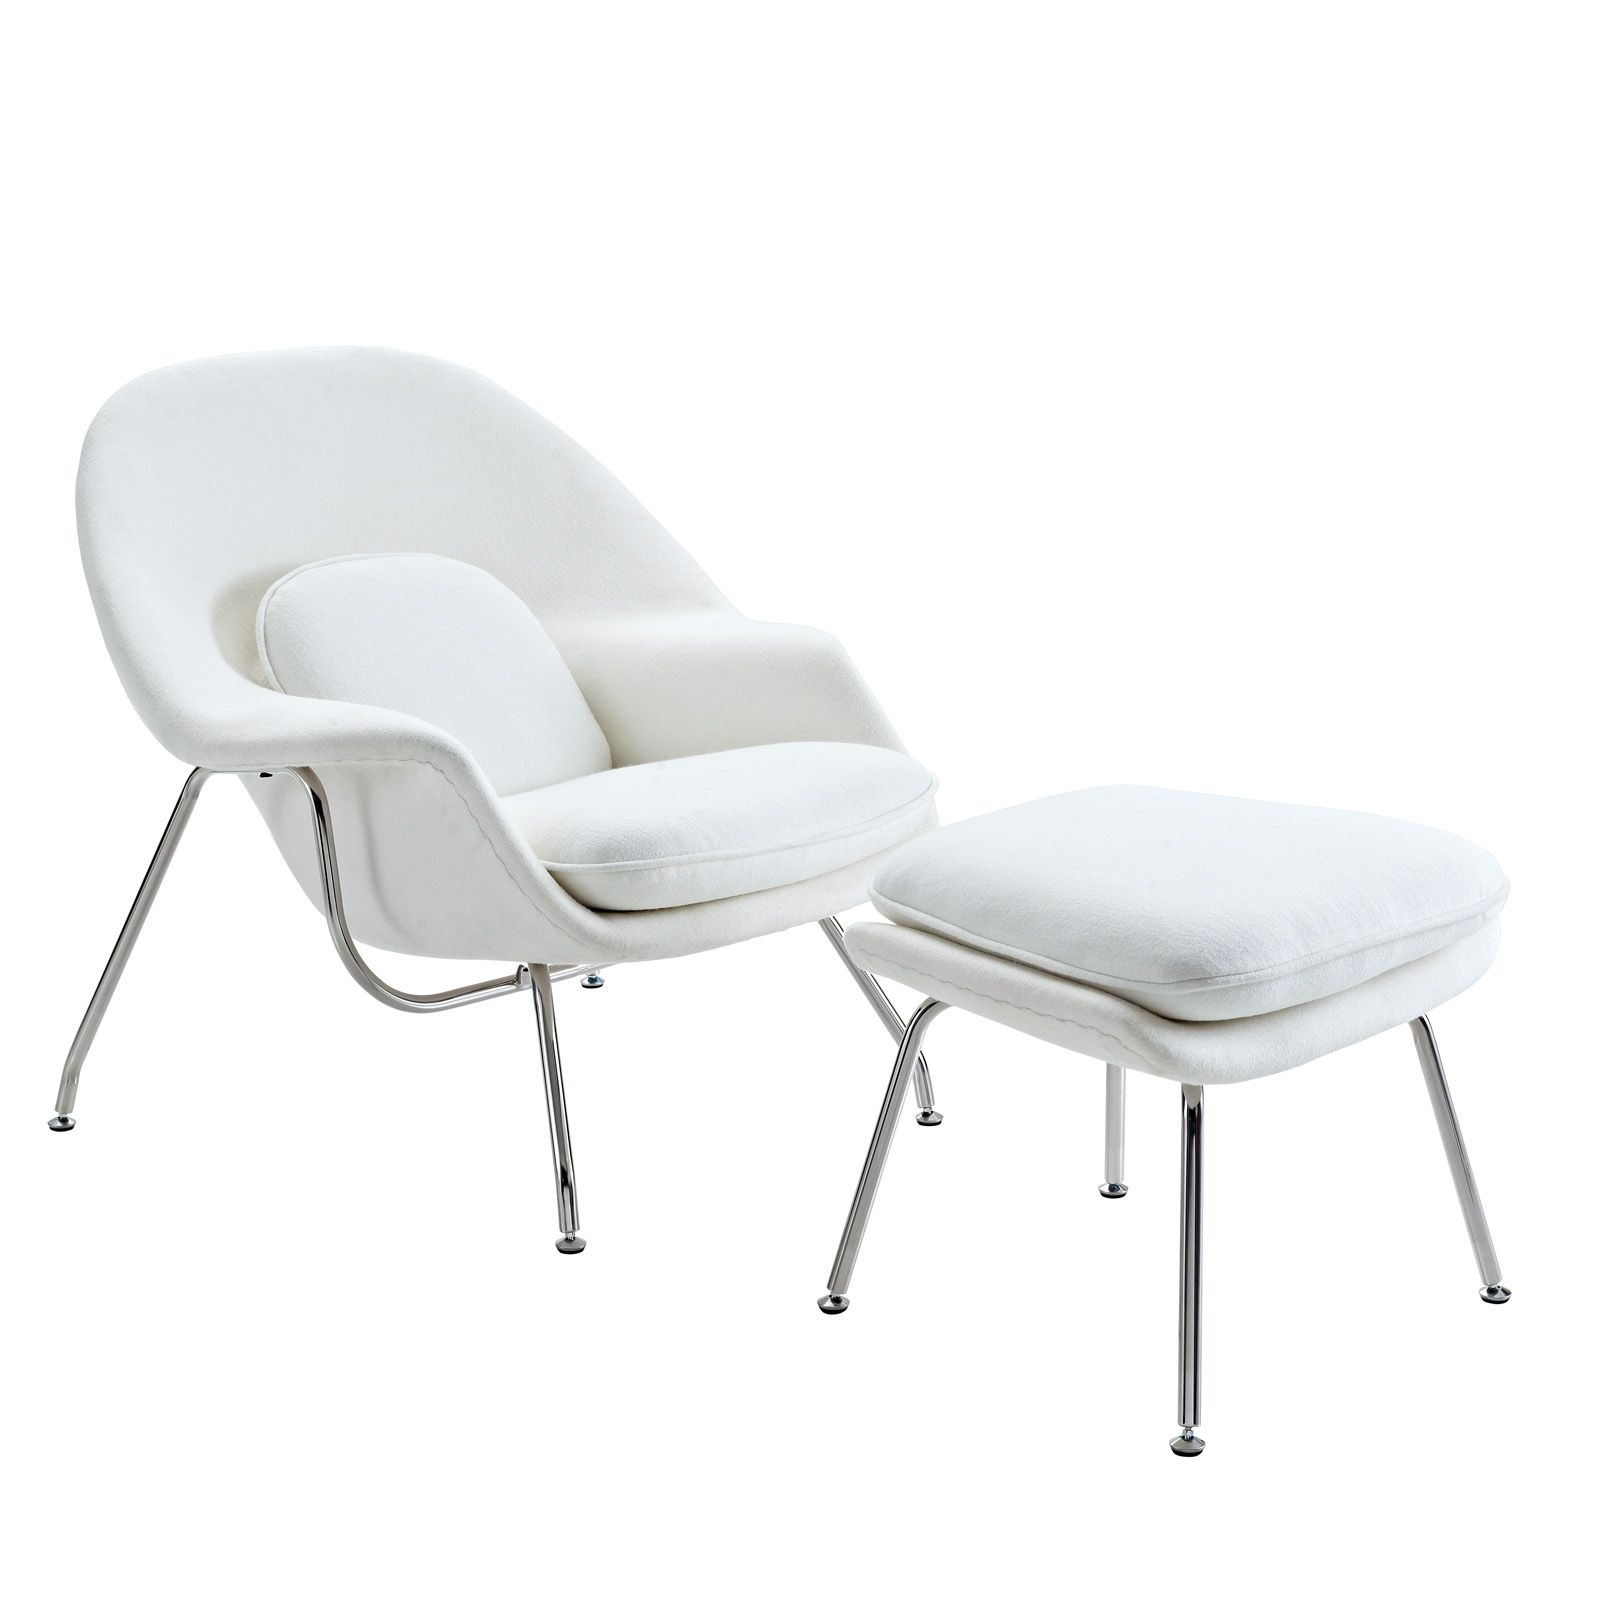 Eero Saarinen Style Womb Chair and Ottoman Set in White